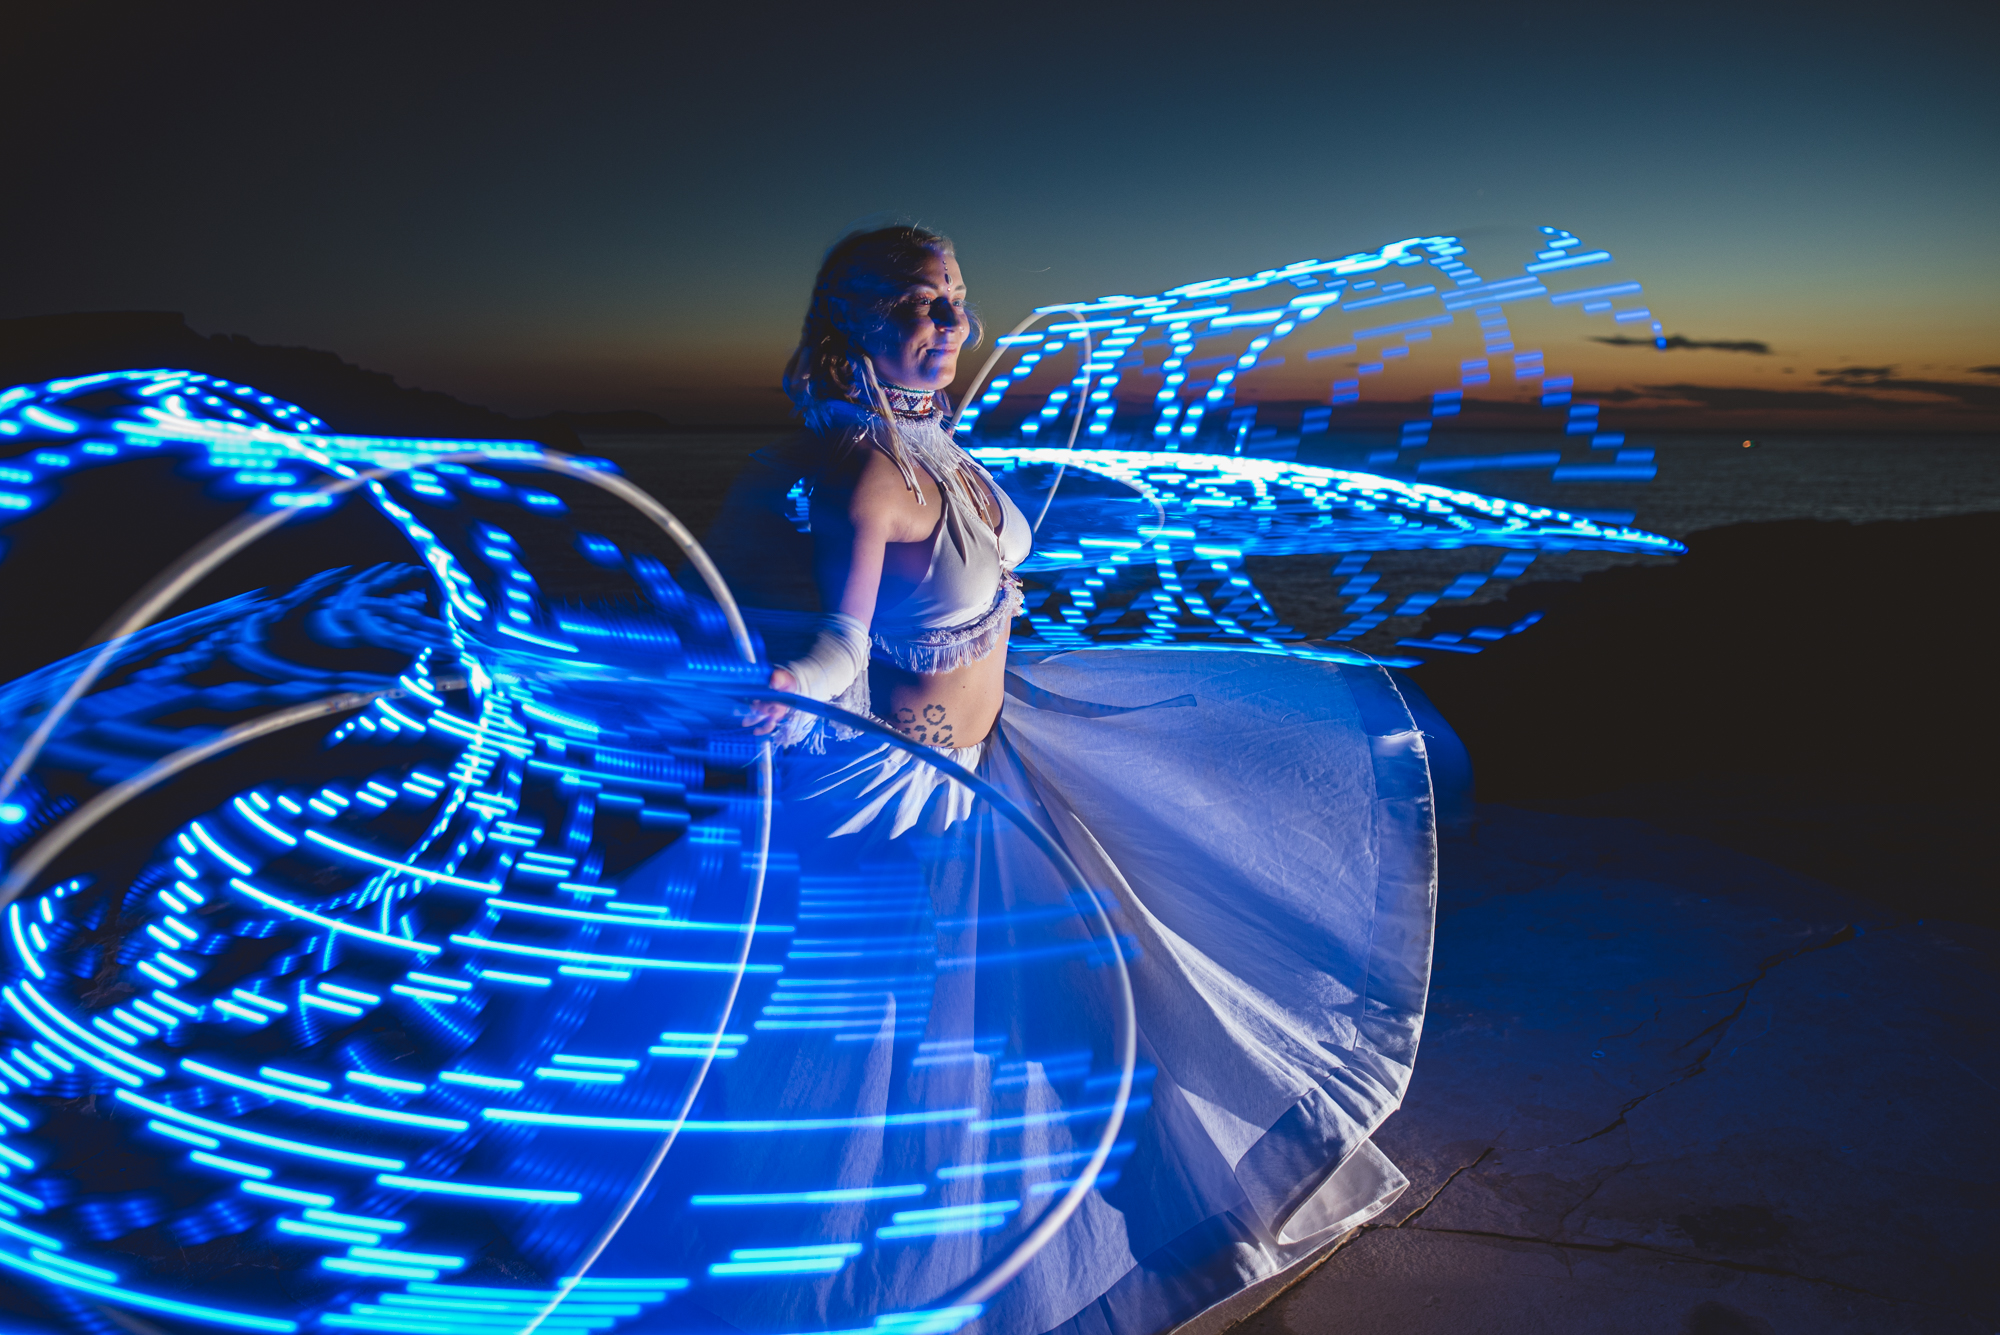 190617_Mitra-Lightpainting-0607